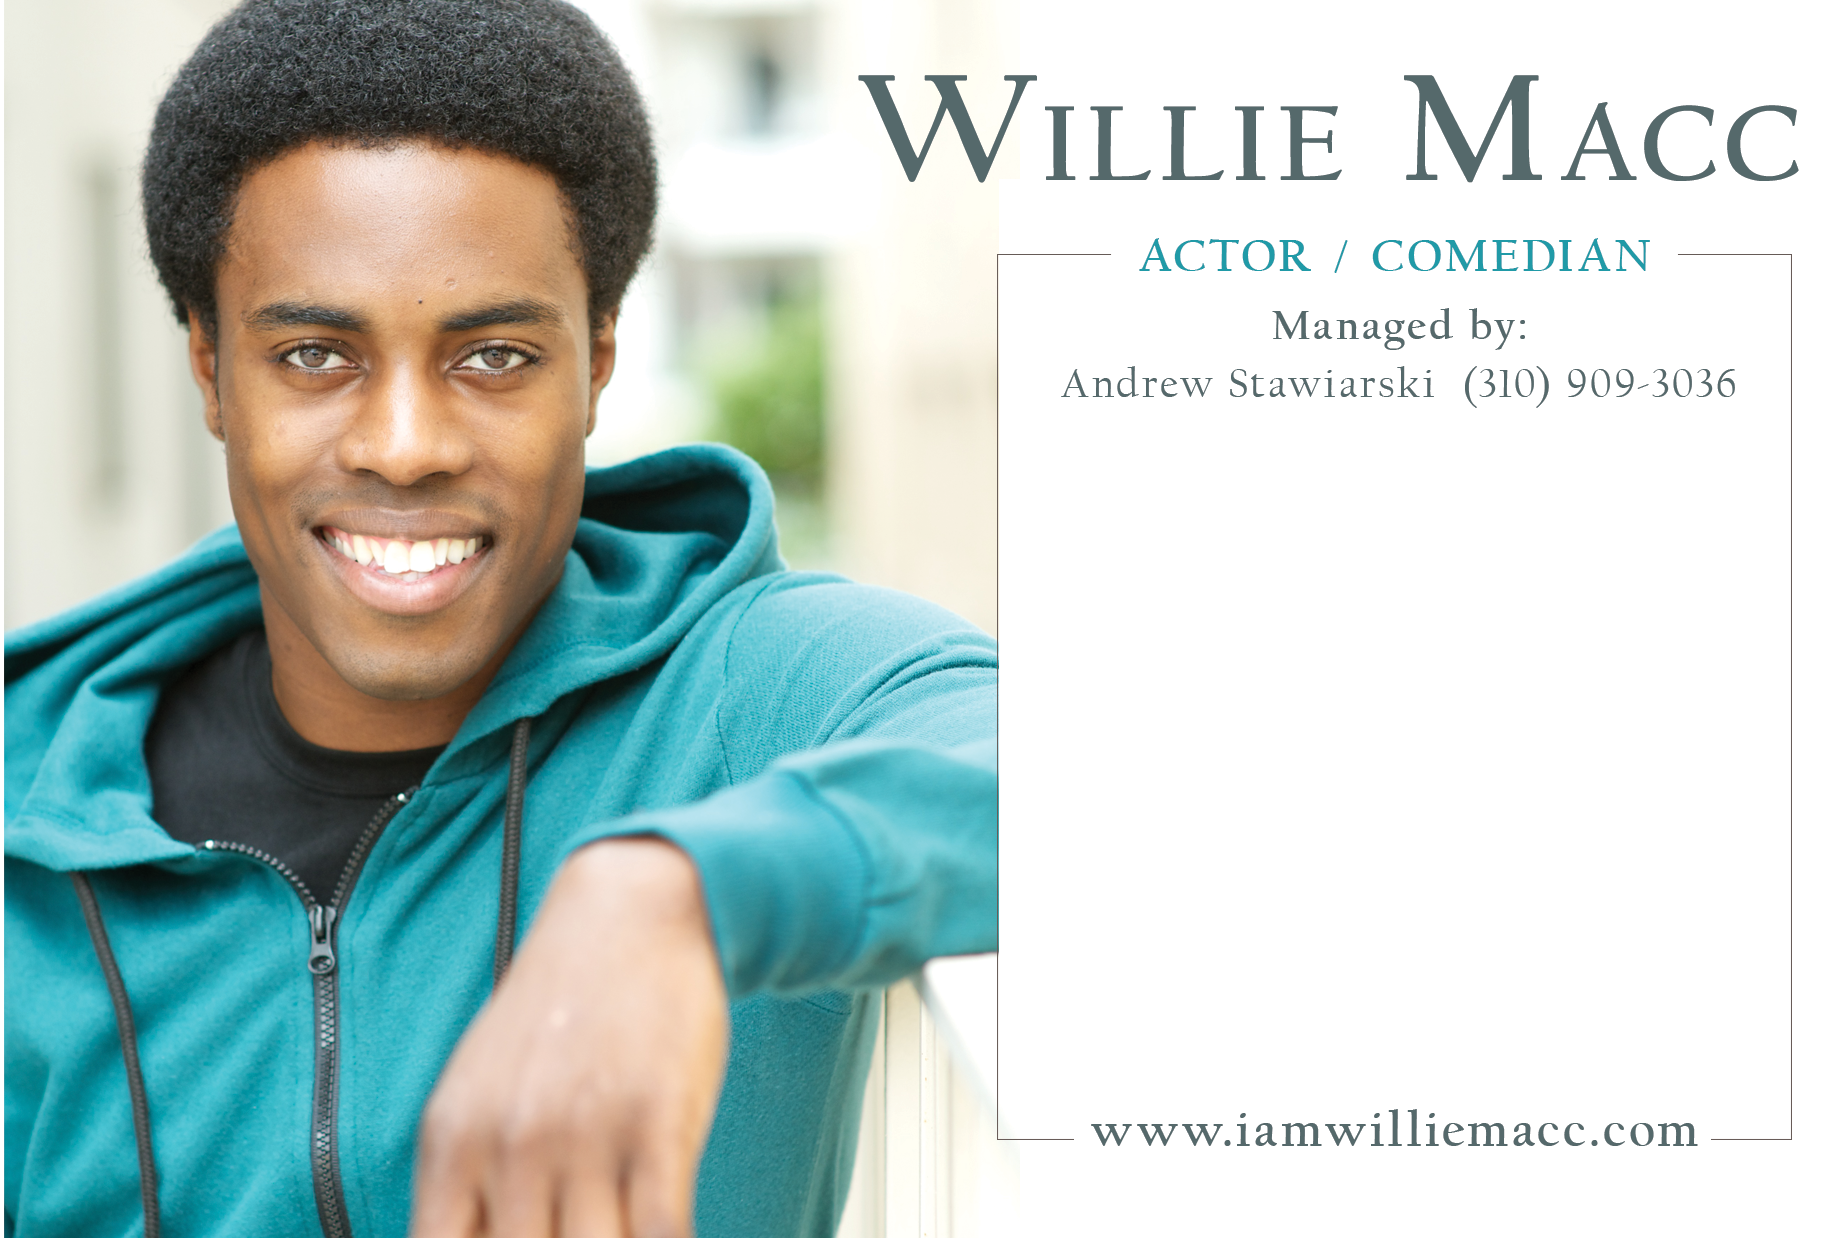 business cards & actor postcards • cecily wiggins • wordpress